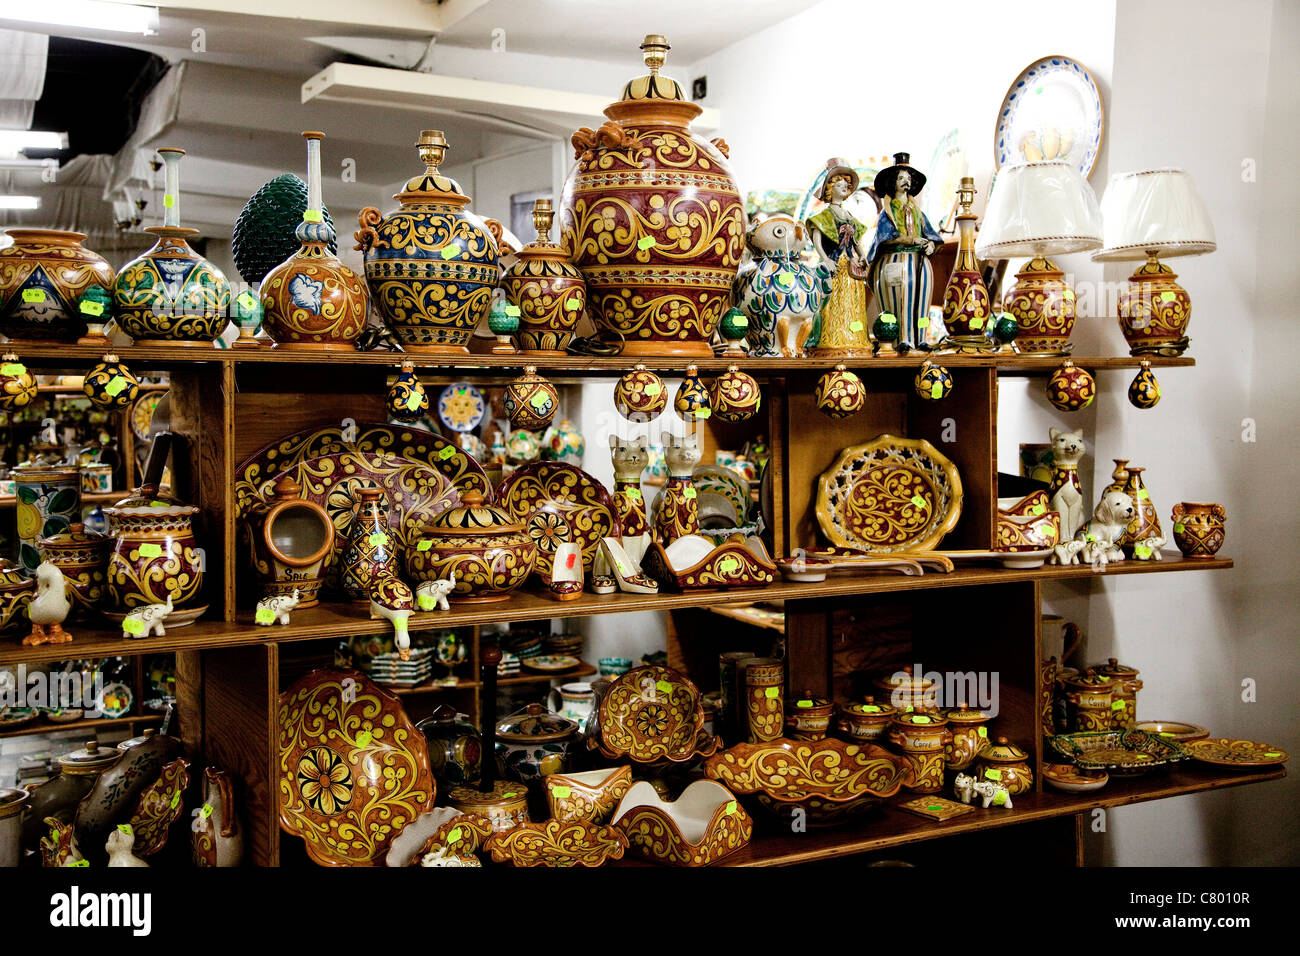 Souvenir Shop With Hand Decorated Ceramics Caltagirone Sicily Stock Photo 39338791 Alamy